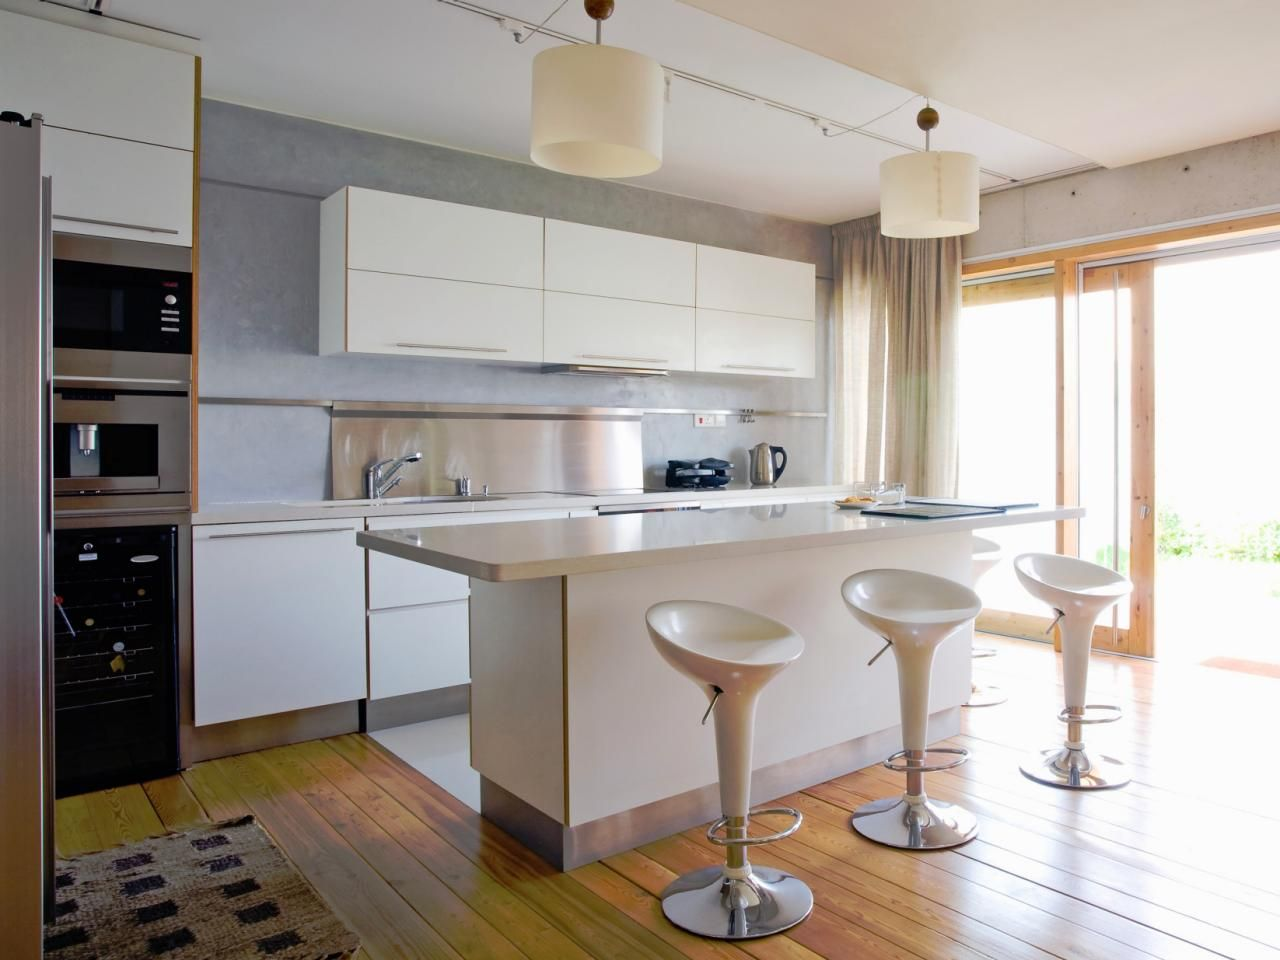 Kitchen Islands with Seating | Pinterest | Küche insel, Inseln und ...